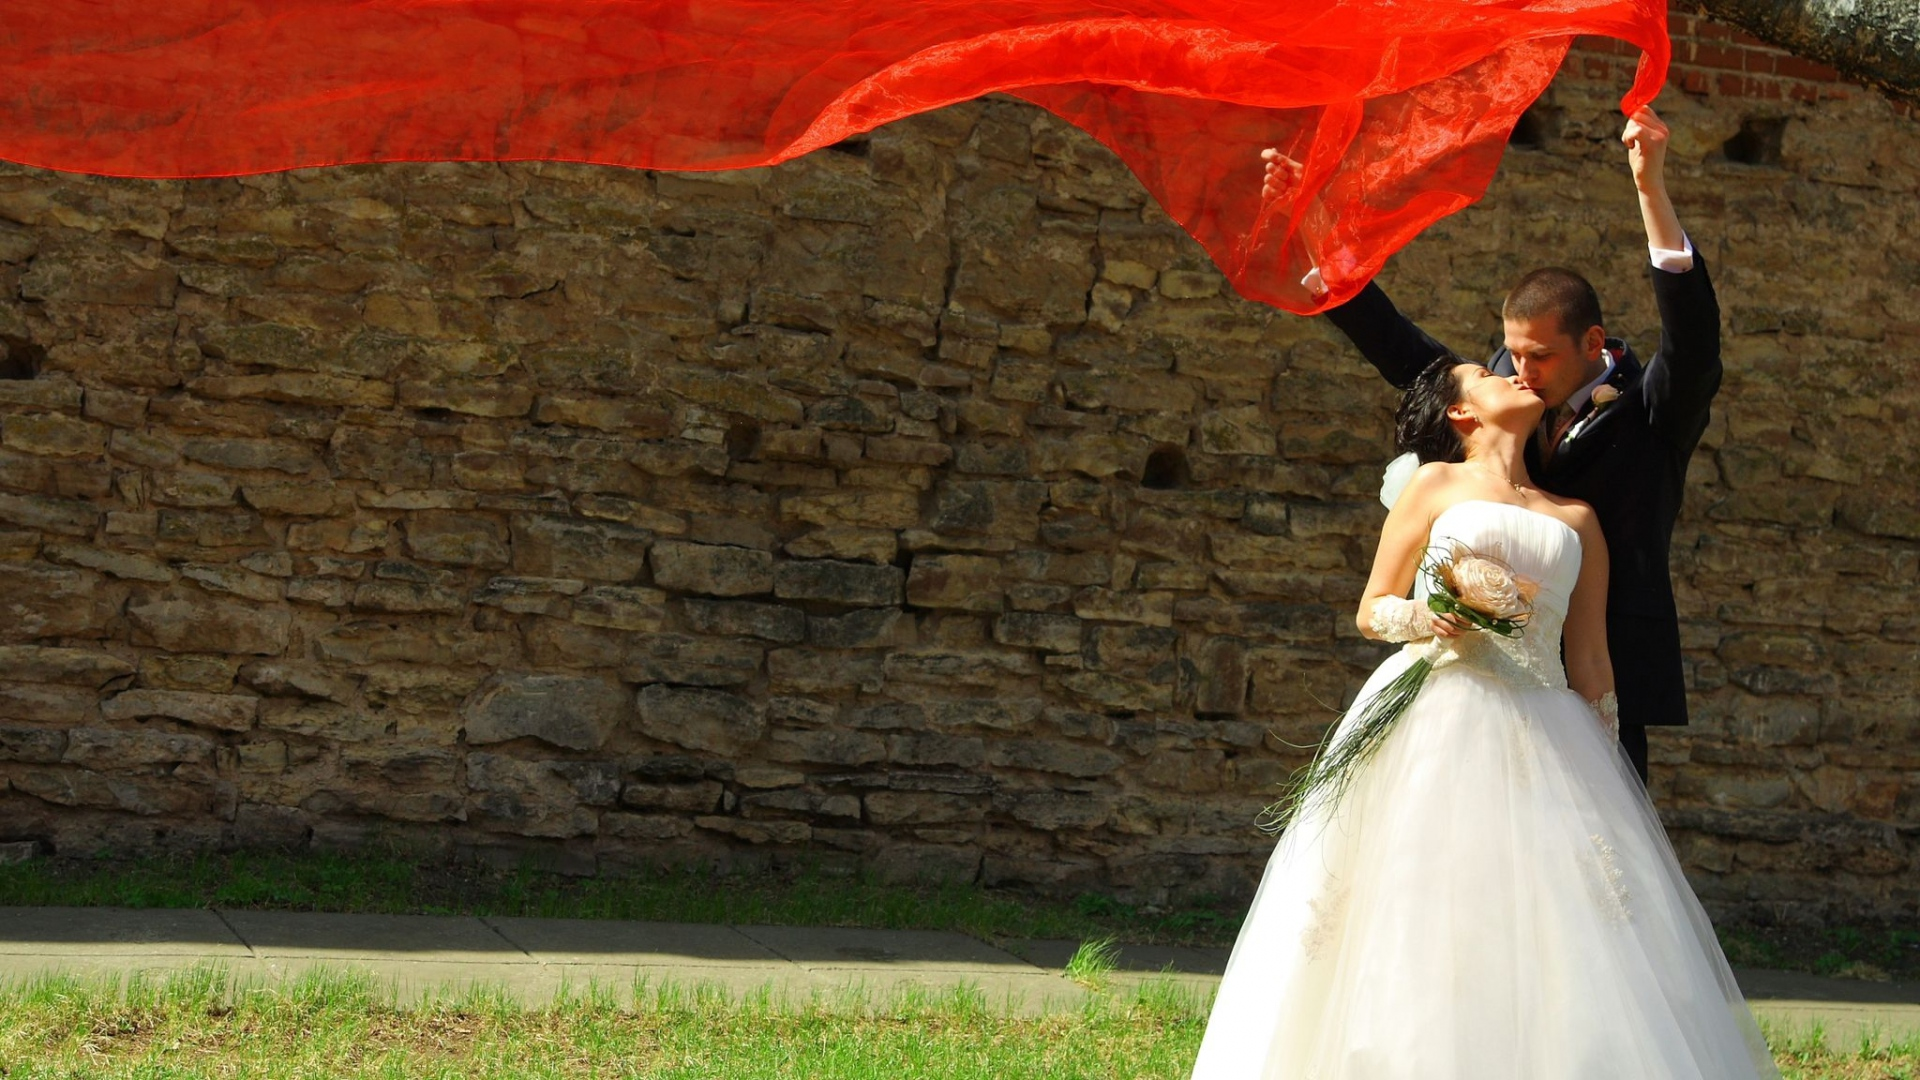 Download Wallpaper 1920x1080 Holiday Wedding Bride Groom Red Full Hd 1080p Hd Background